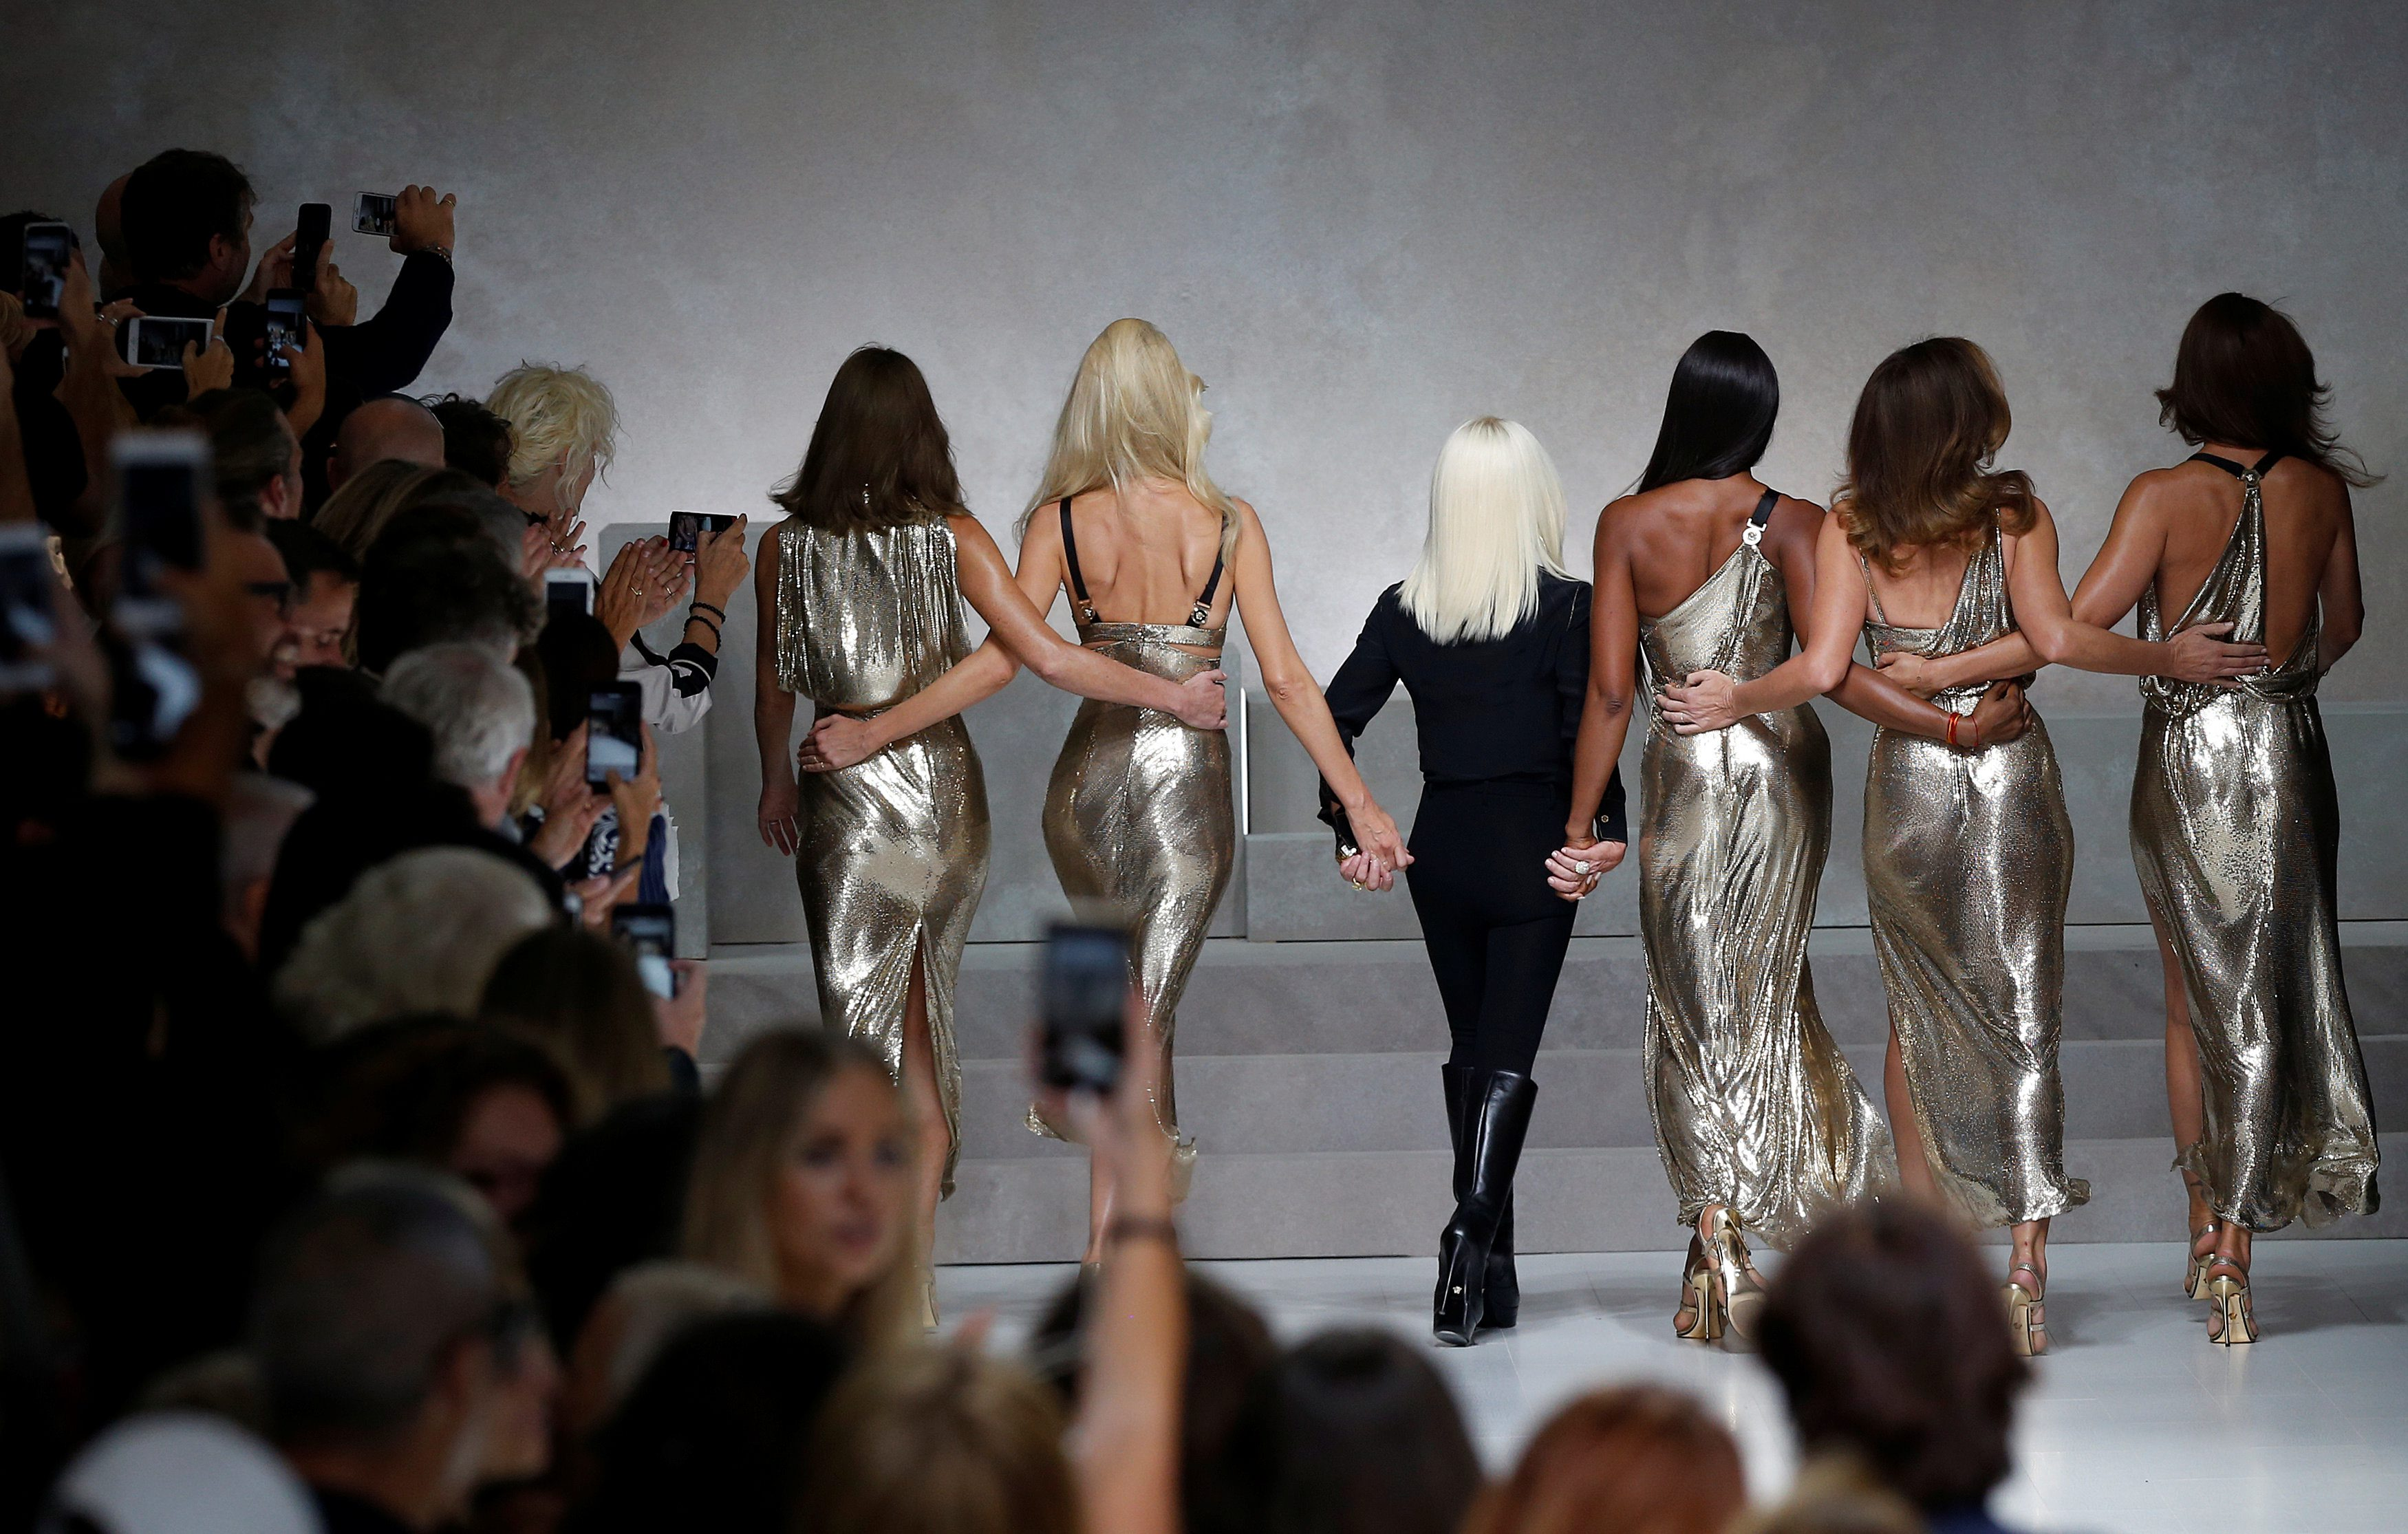 Italian designer Donatella Versace (3L) acknowledges the applause with former top models Carla Bruni (L), Claudia Schiffer, Naomi Campbell, Cindy Crawford and Helena Christensen (R) at the end of Versace Spring/Summer 2018 show at the Milan Fashion Week in Milan, Italy, September 22, 2017. REUTERS/Stefano Rellandini